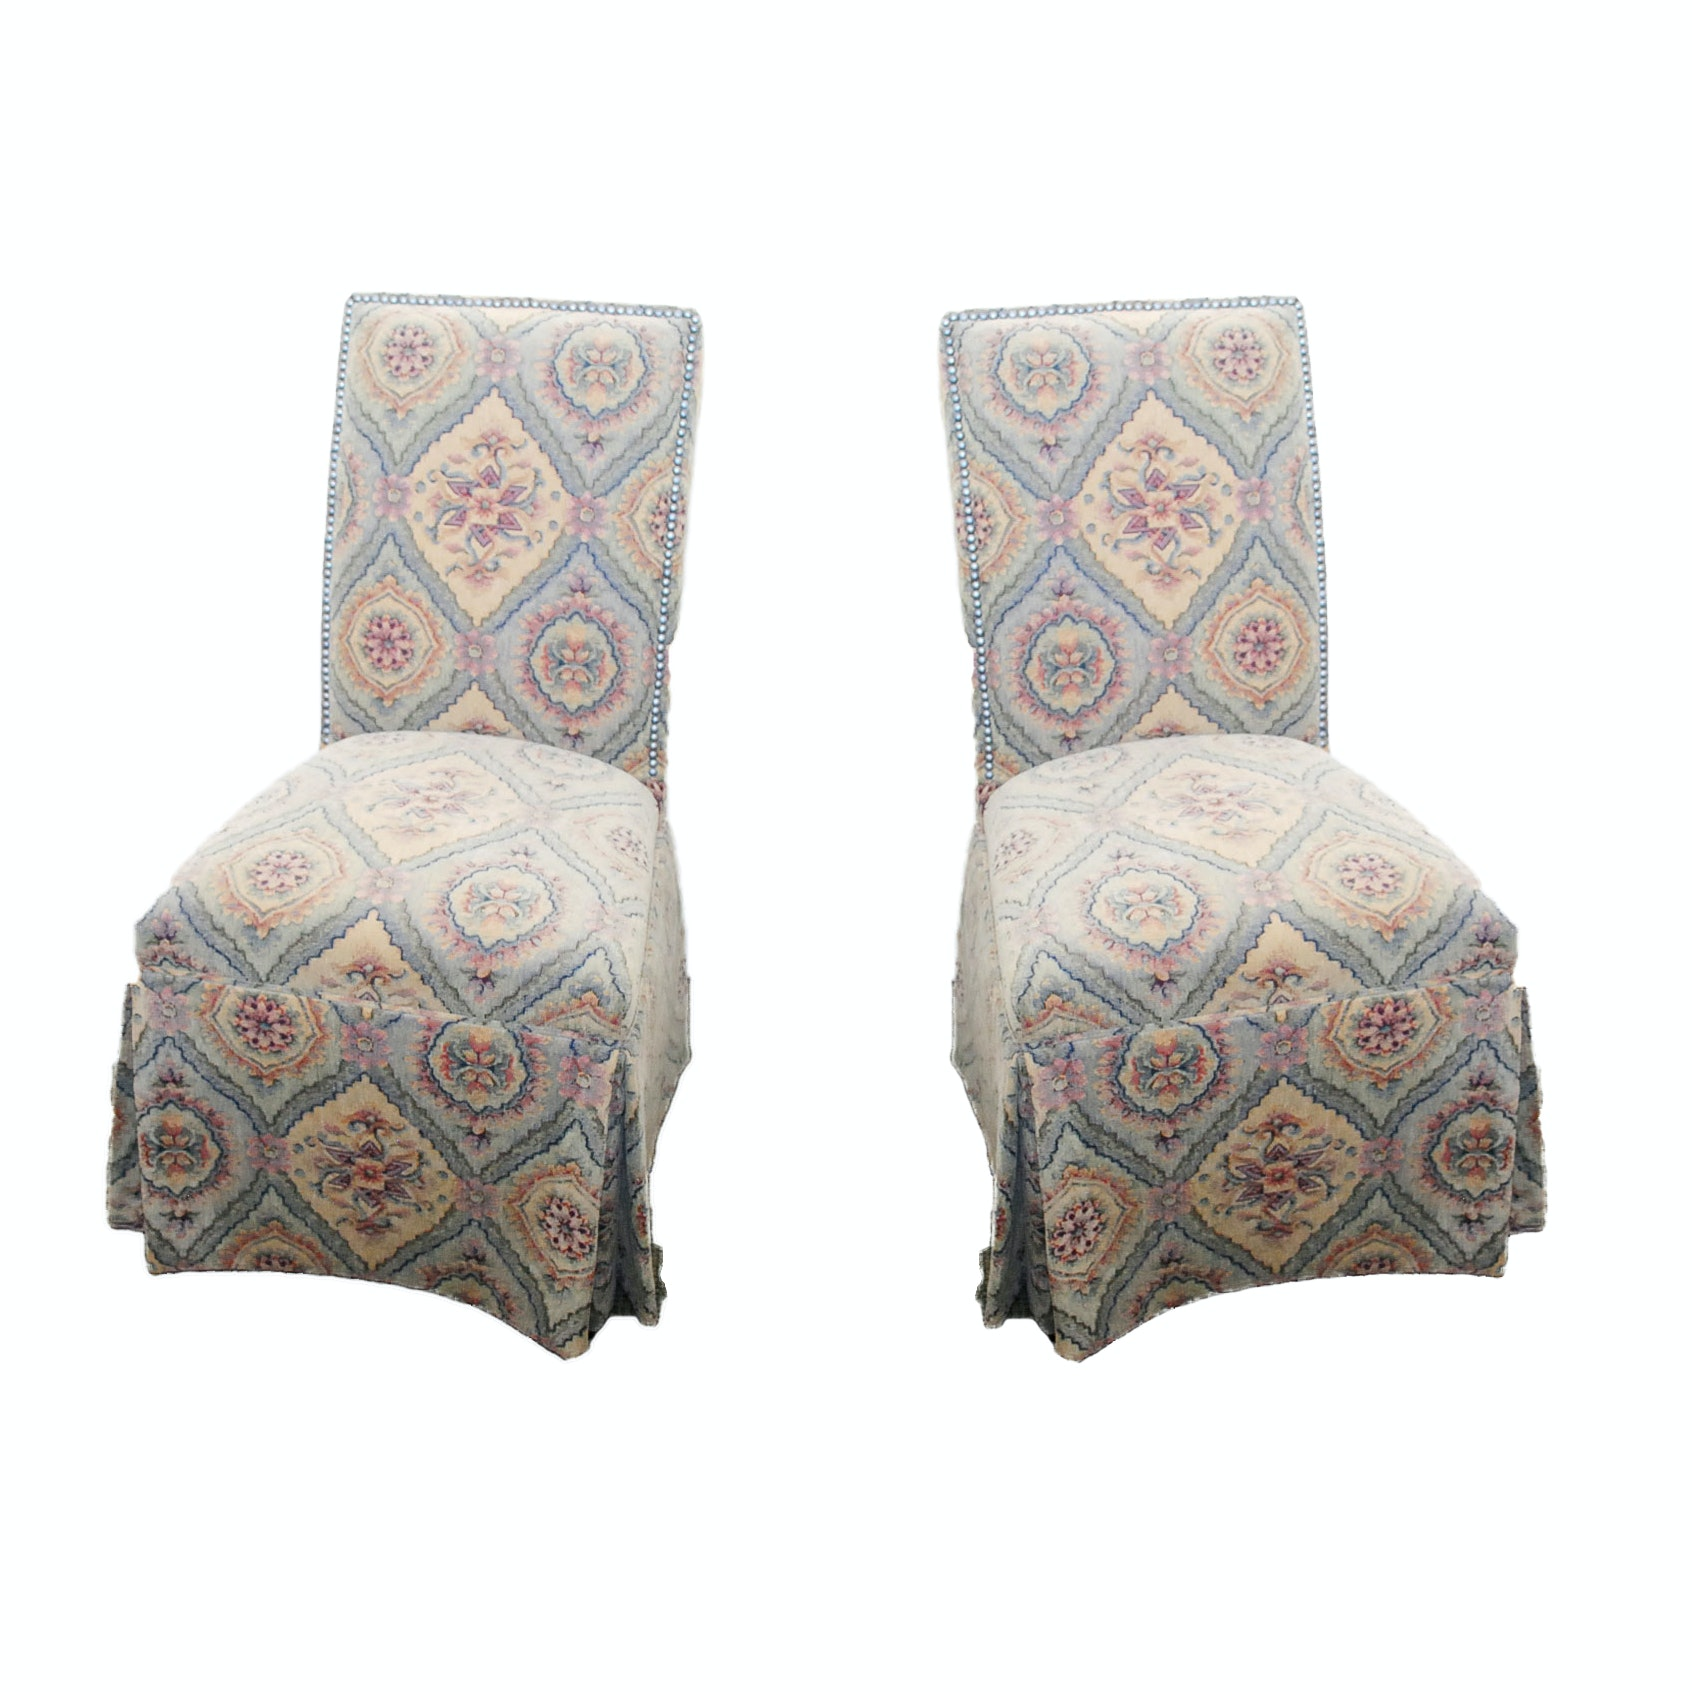 A Pair of Upholstered Parson Chairs